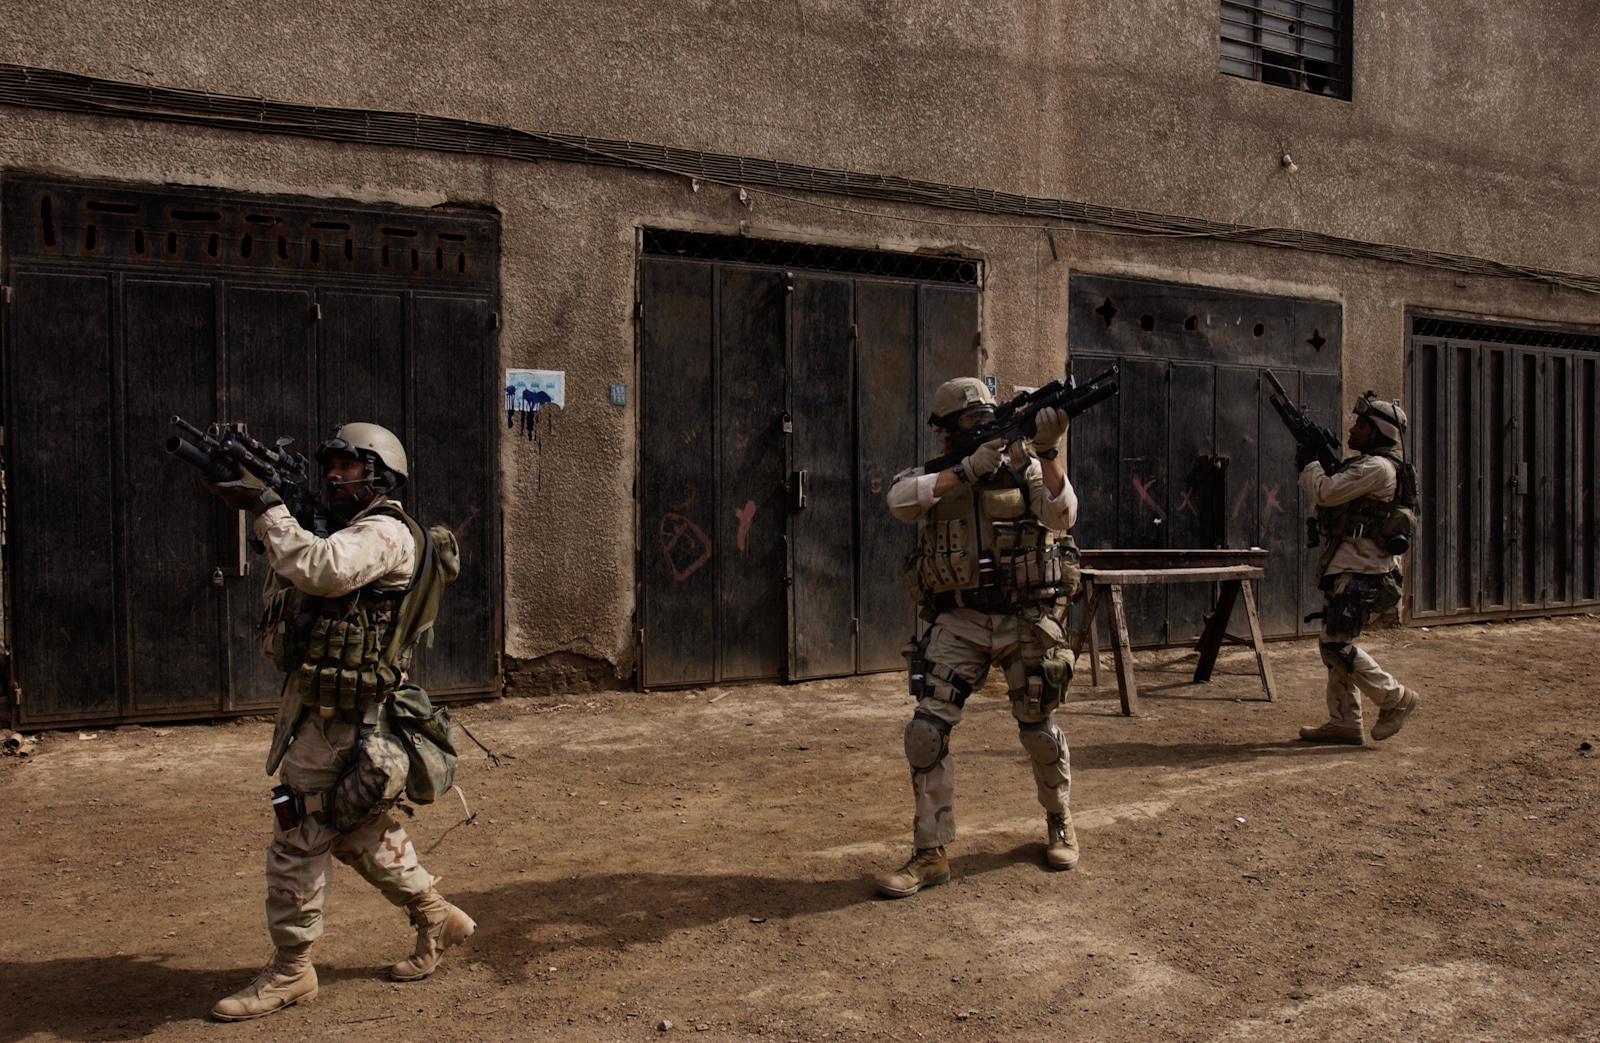 Soldiers search for militants who were targeting U.S. forces in Baghdad, Iraq, April 12, 2003.